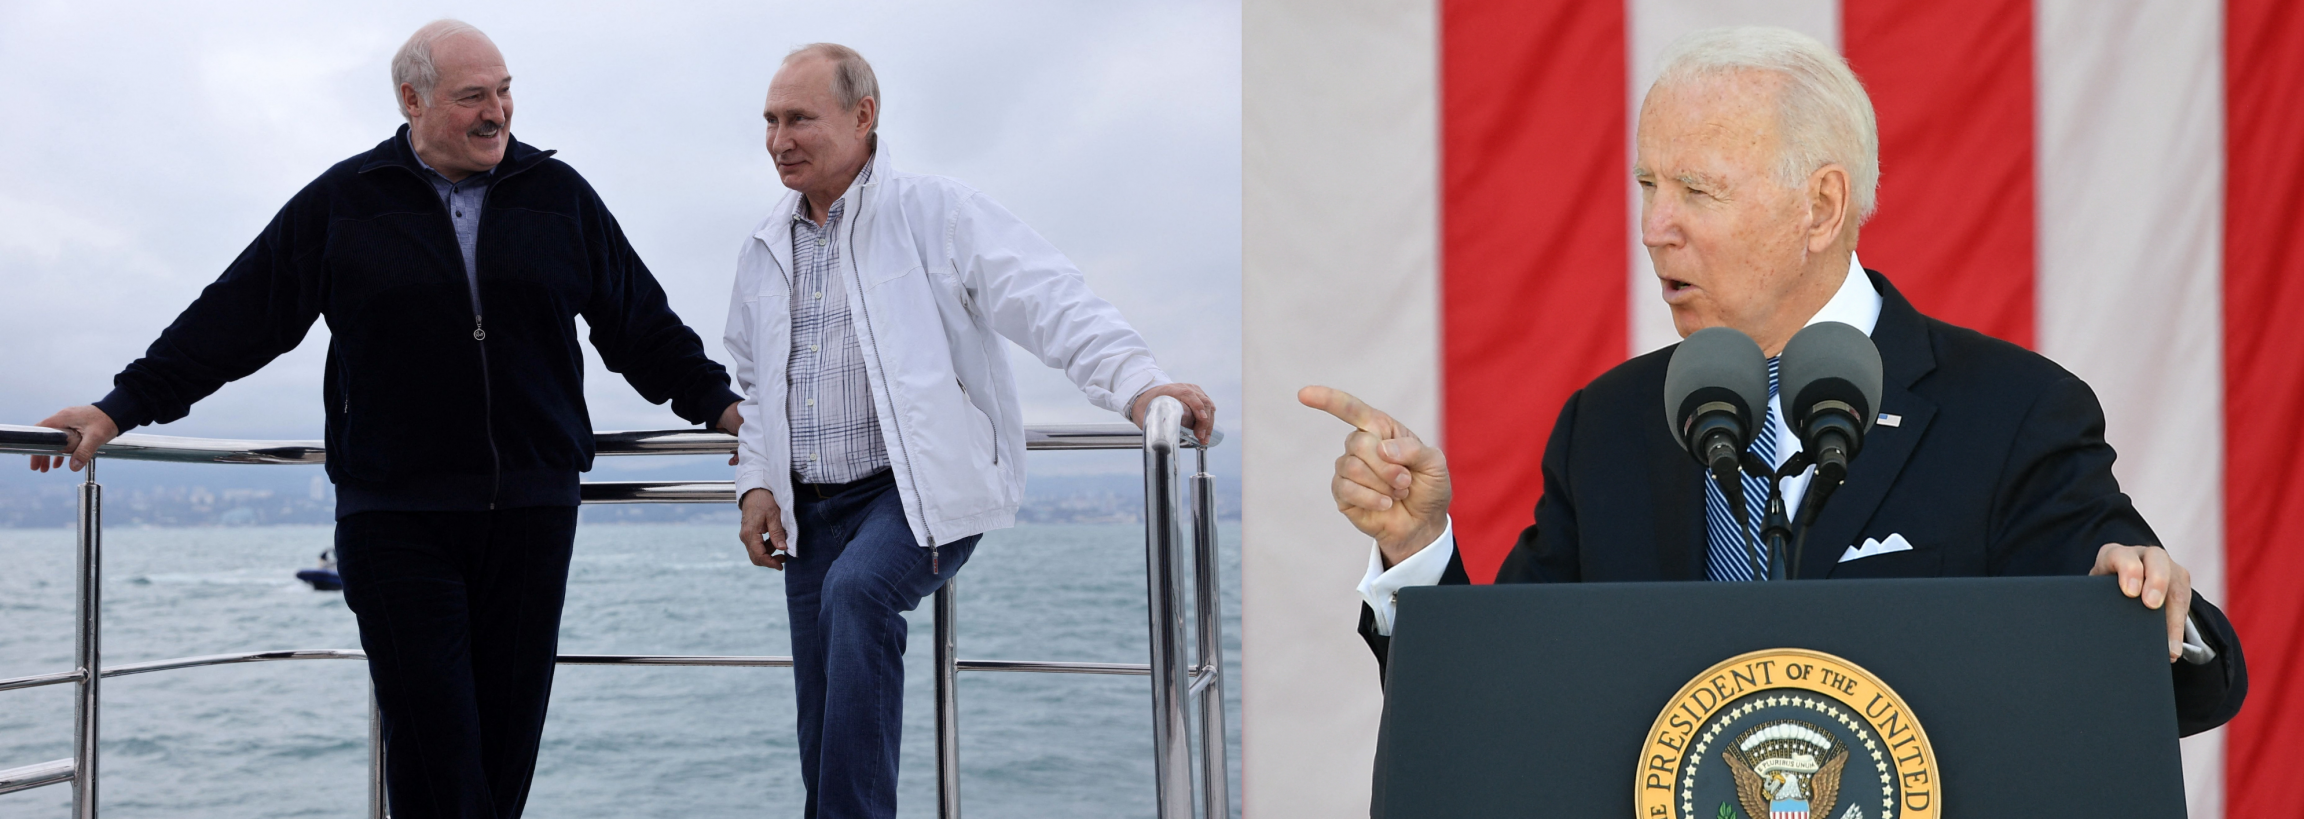 On the left, a photo of Alexander Lukashenko standing and talking with Vladimir Putin. On the right, a photo of Joe Biden at a podium.